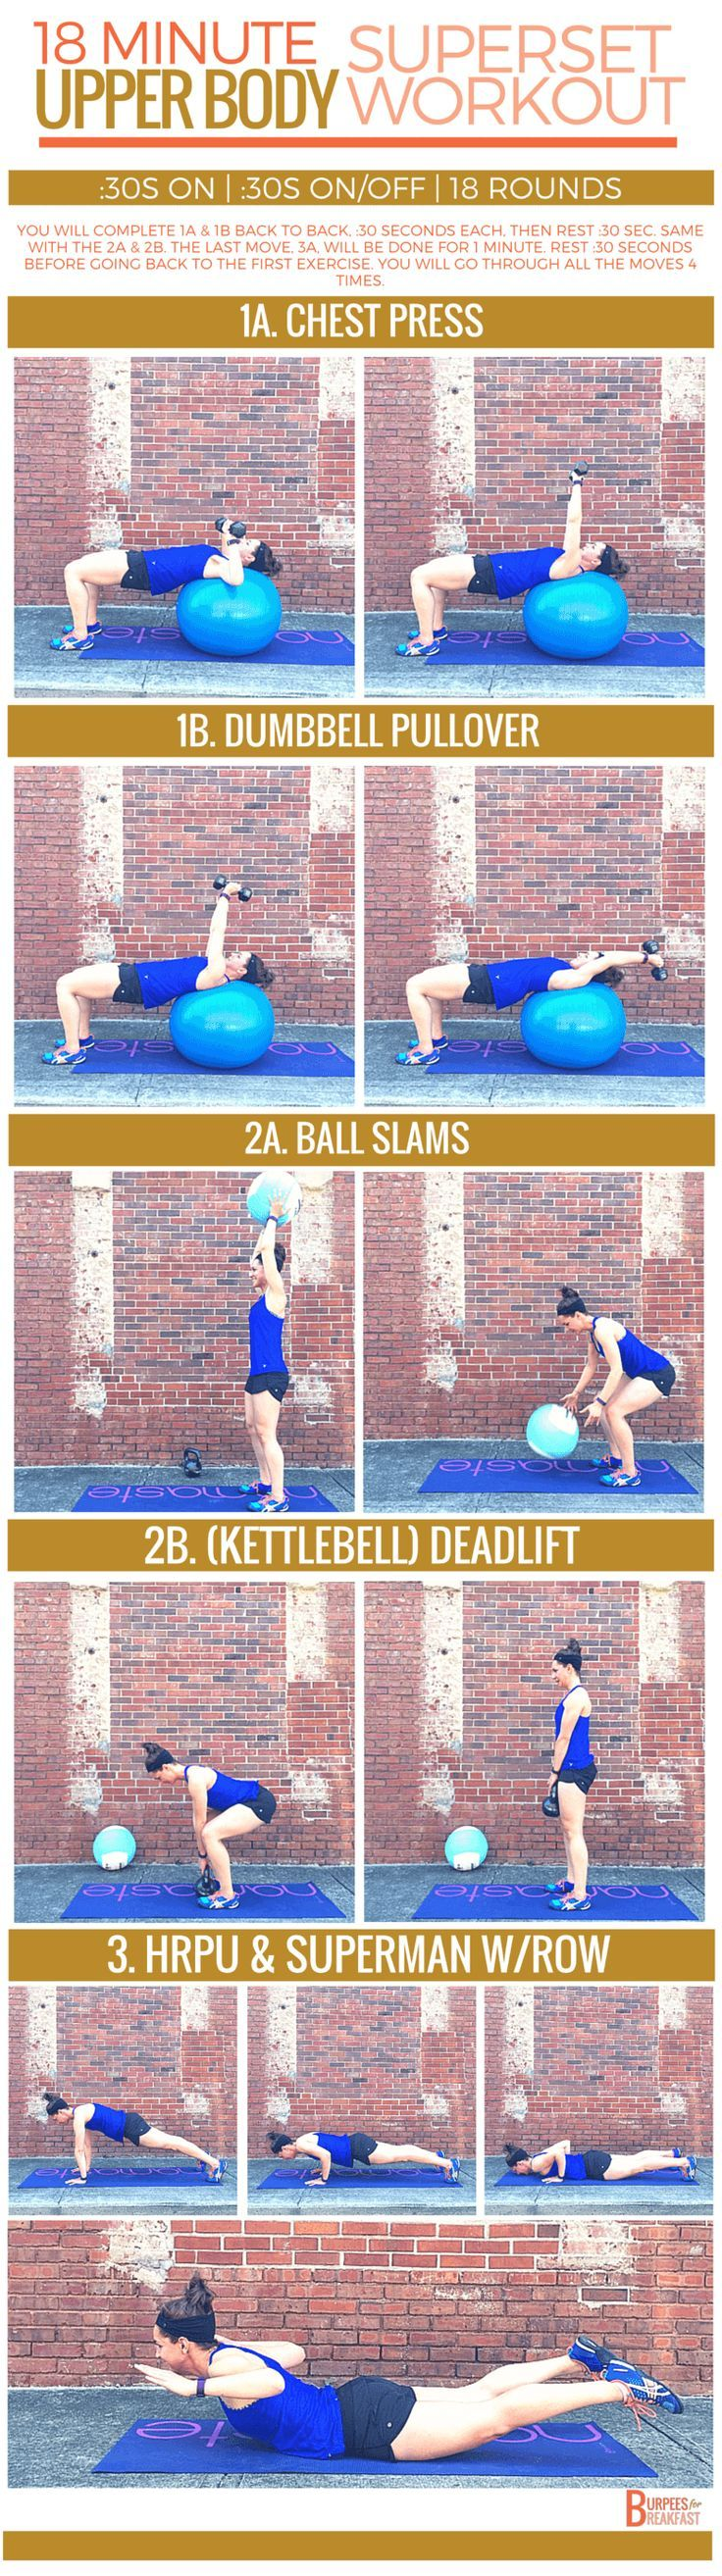 Ready for an upper body superset workout to build strength and muscle definition, just in time for summer?